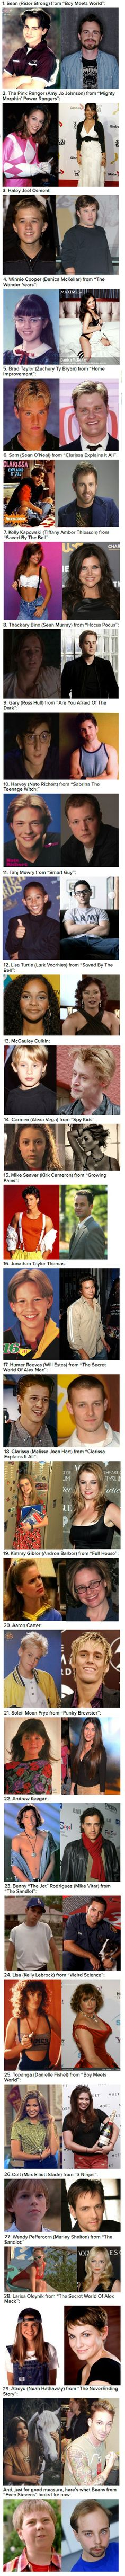 29 Of Your Childhood Crushes Then And Now -   Misc